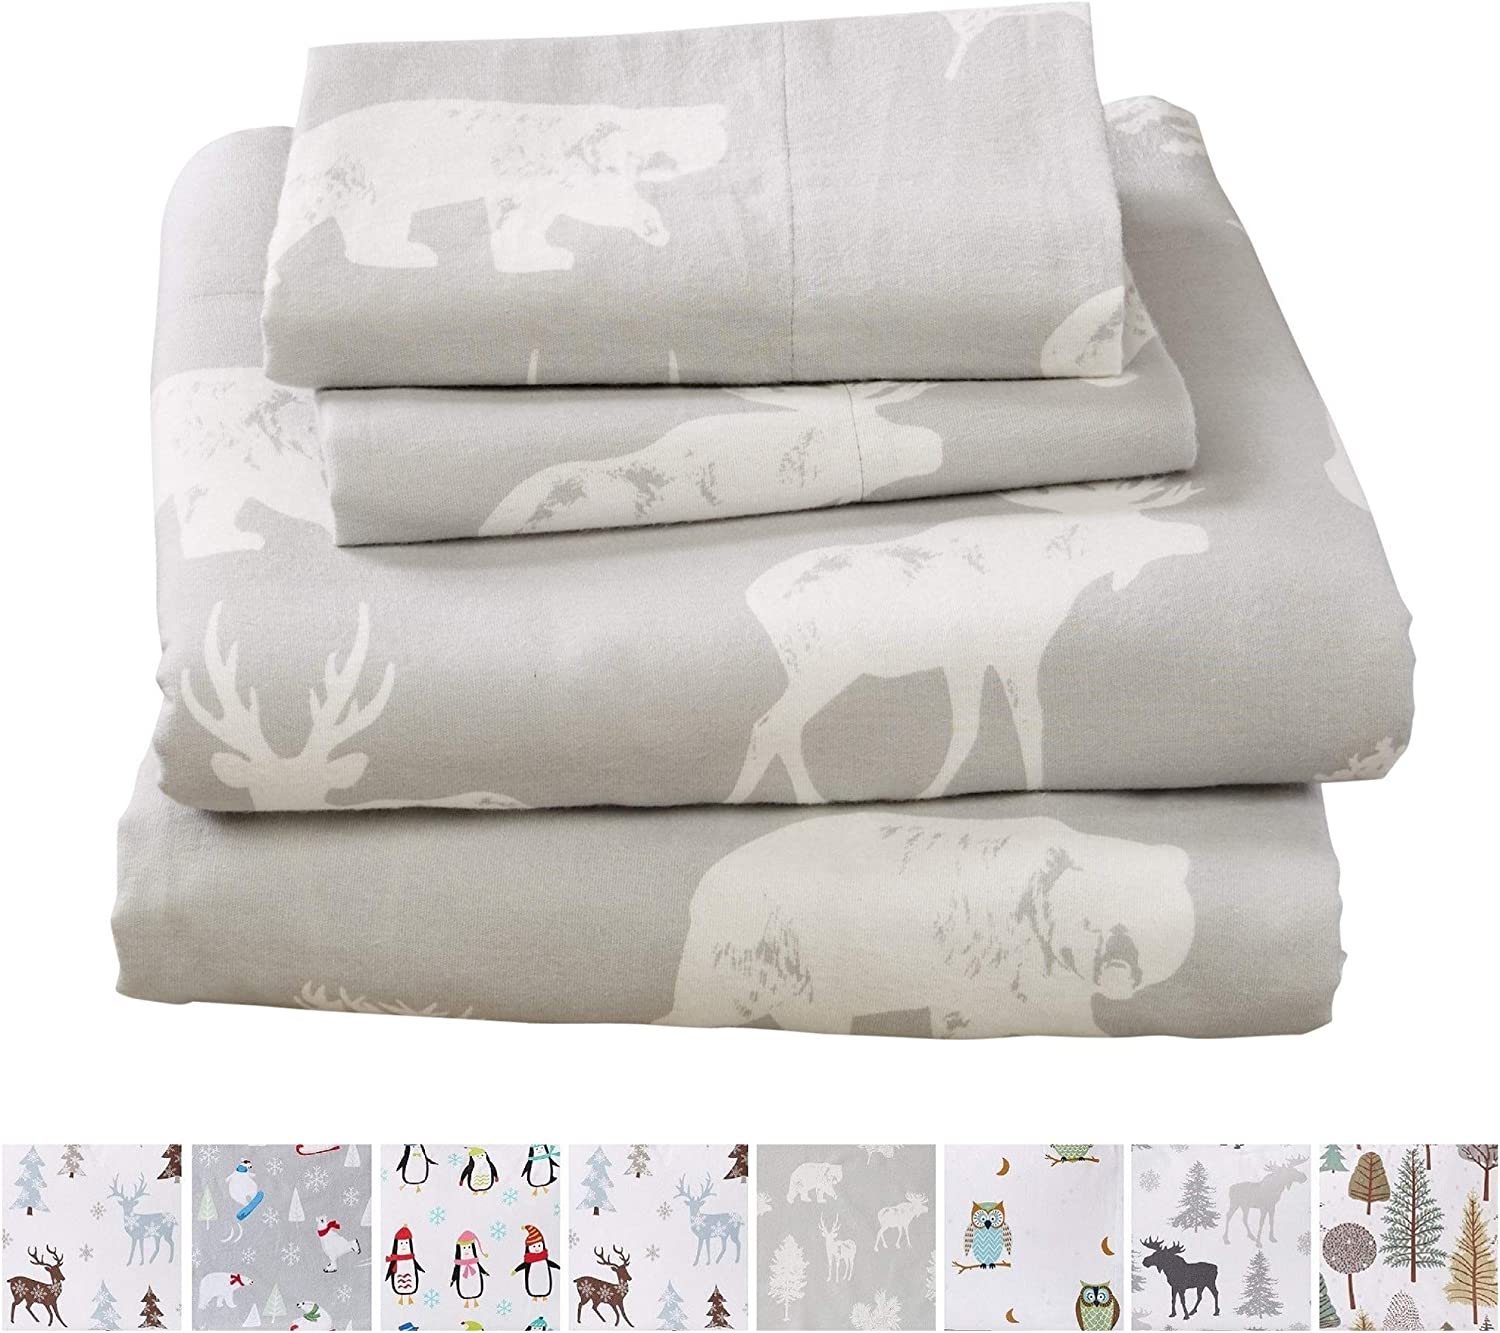 Home Fashion Designs Stratton Collection Extra Soft Printed 100% Turkish Cotton Flannel Sheet Set. Warm, Cozy, Lightweight, Luxury Winter Bed Sheets Brand. (California King, Forest Animals)